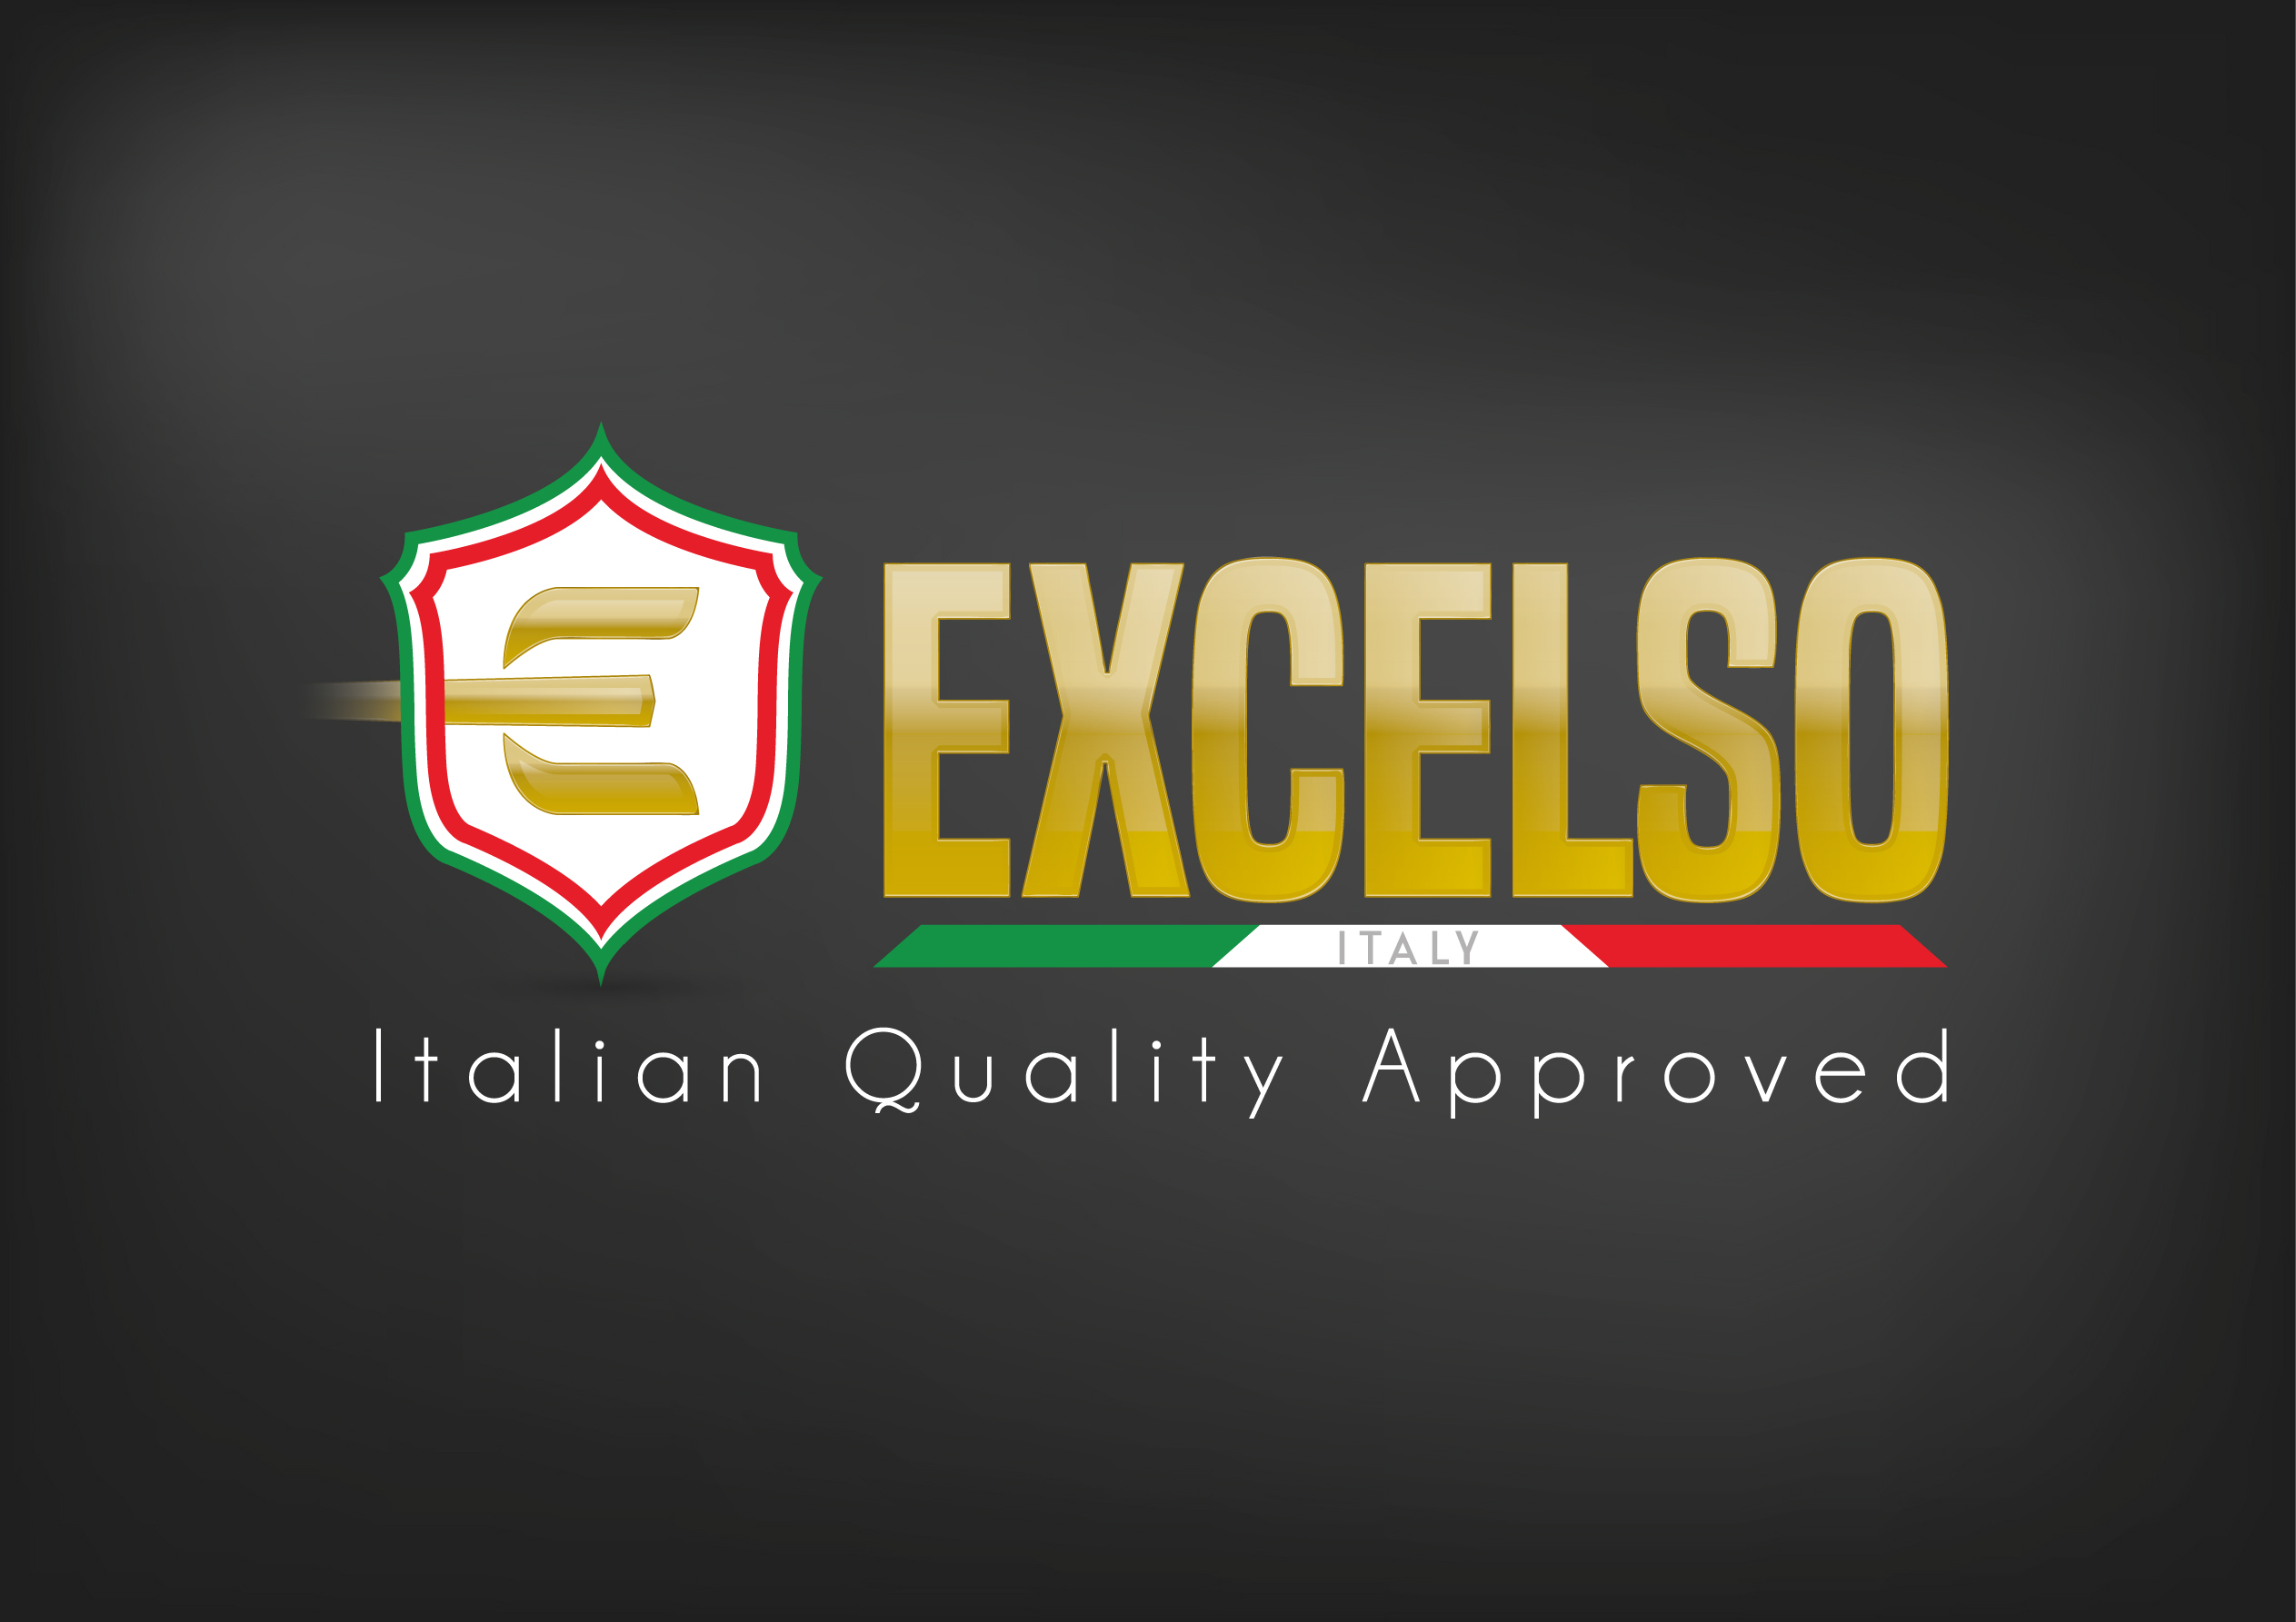 proposte_logo_brand_excelso_rev_02_22-12-2020_orizzontale+bkg